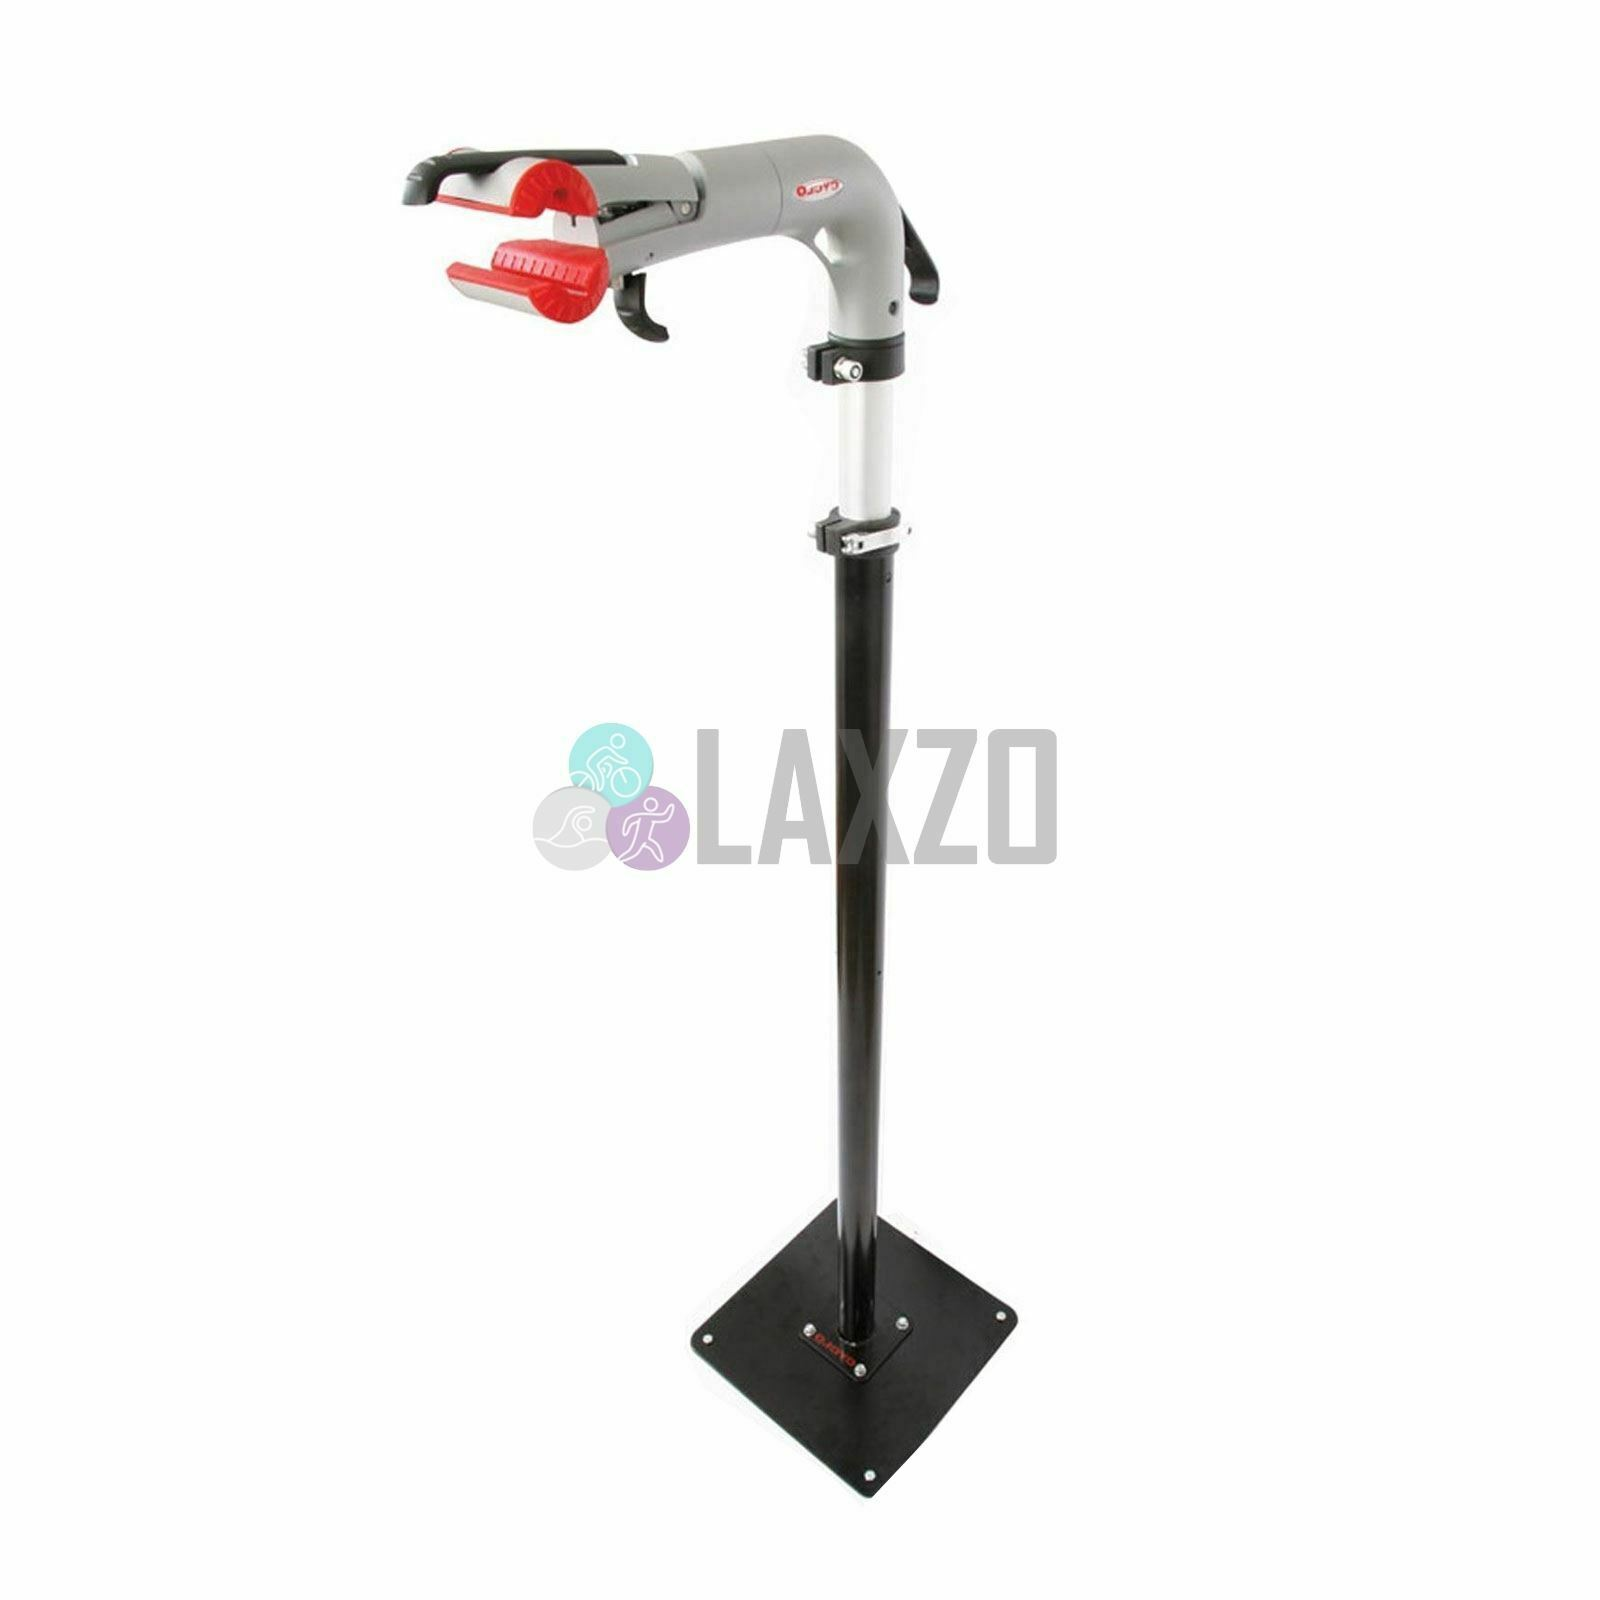 Cyclo Floor Mount excludes clamp head Bike Maintenance  Repair Stand Holder  factory outlet store